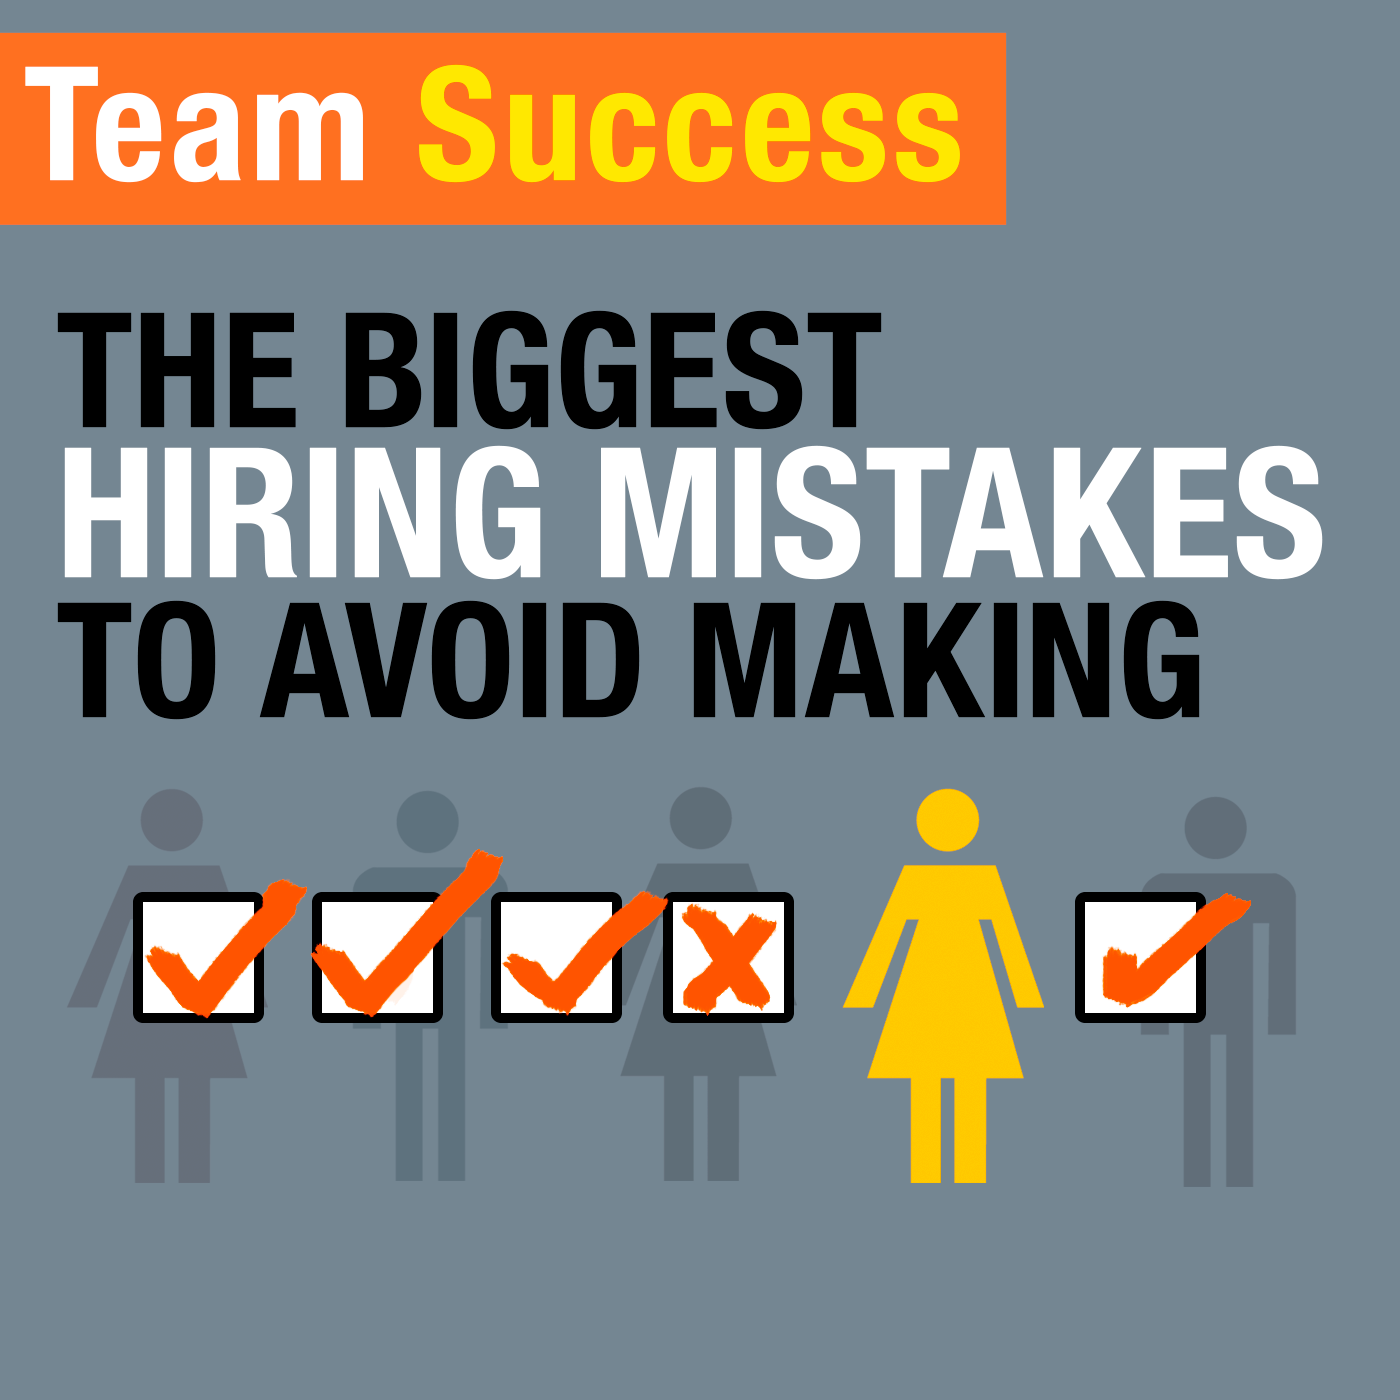 The Biggest Hiring Mistakes To Avoid Making